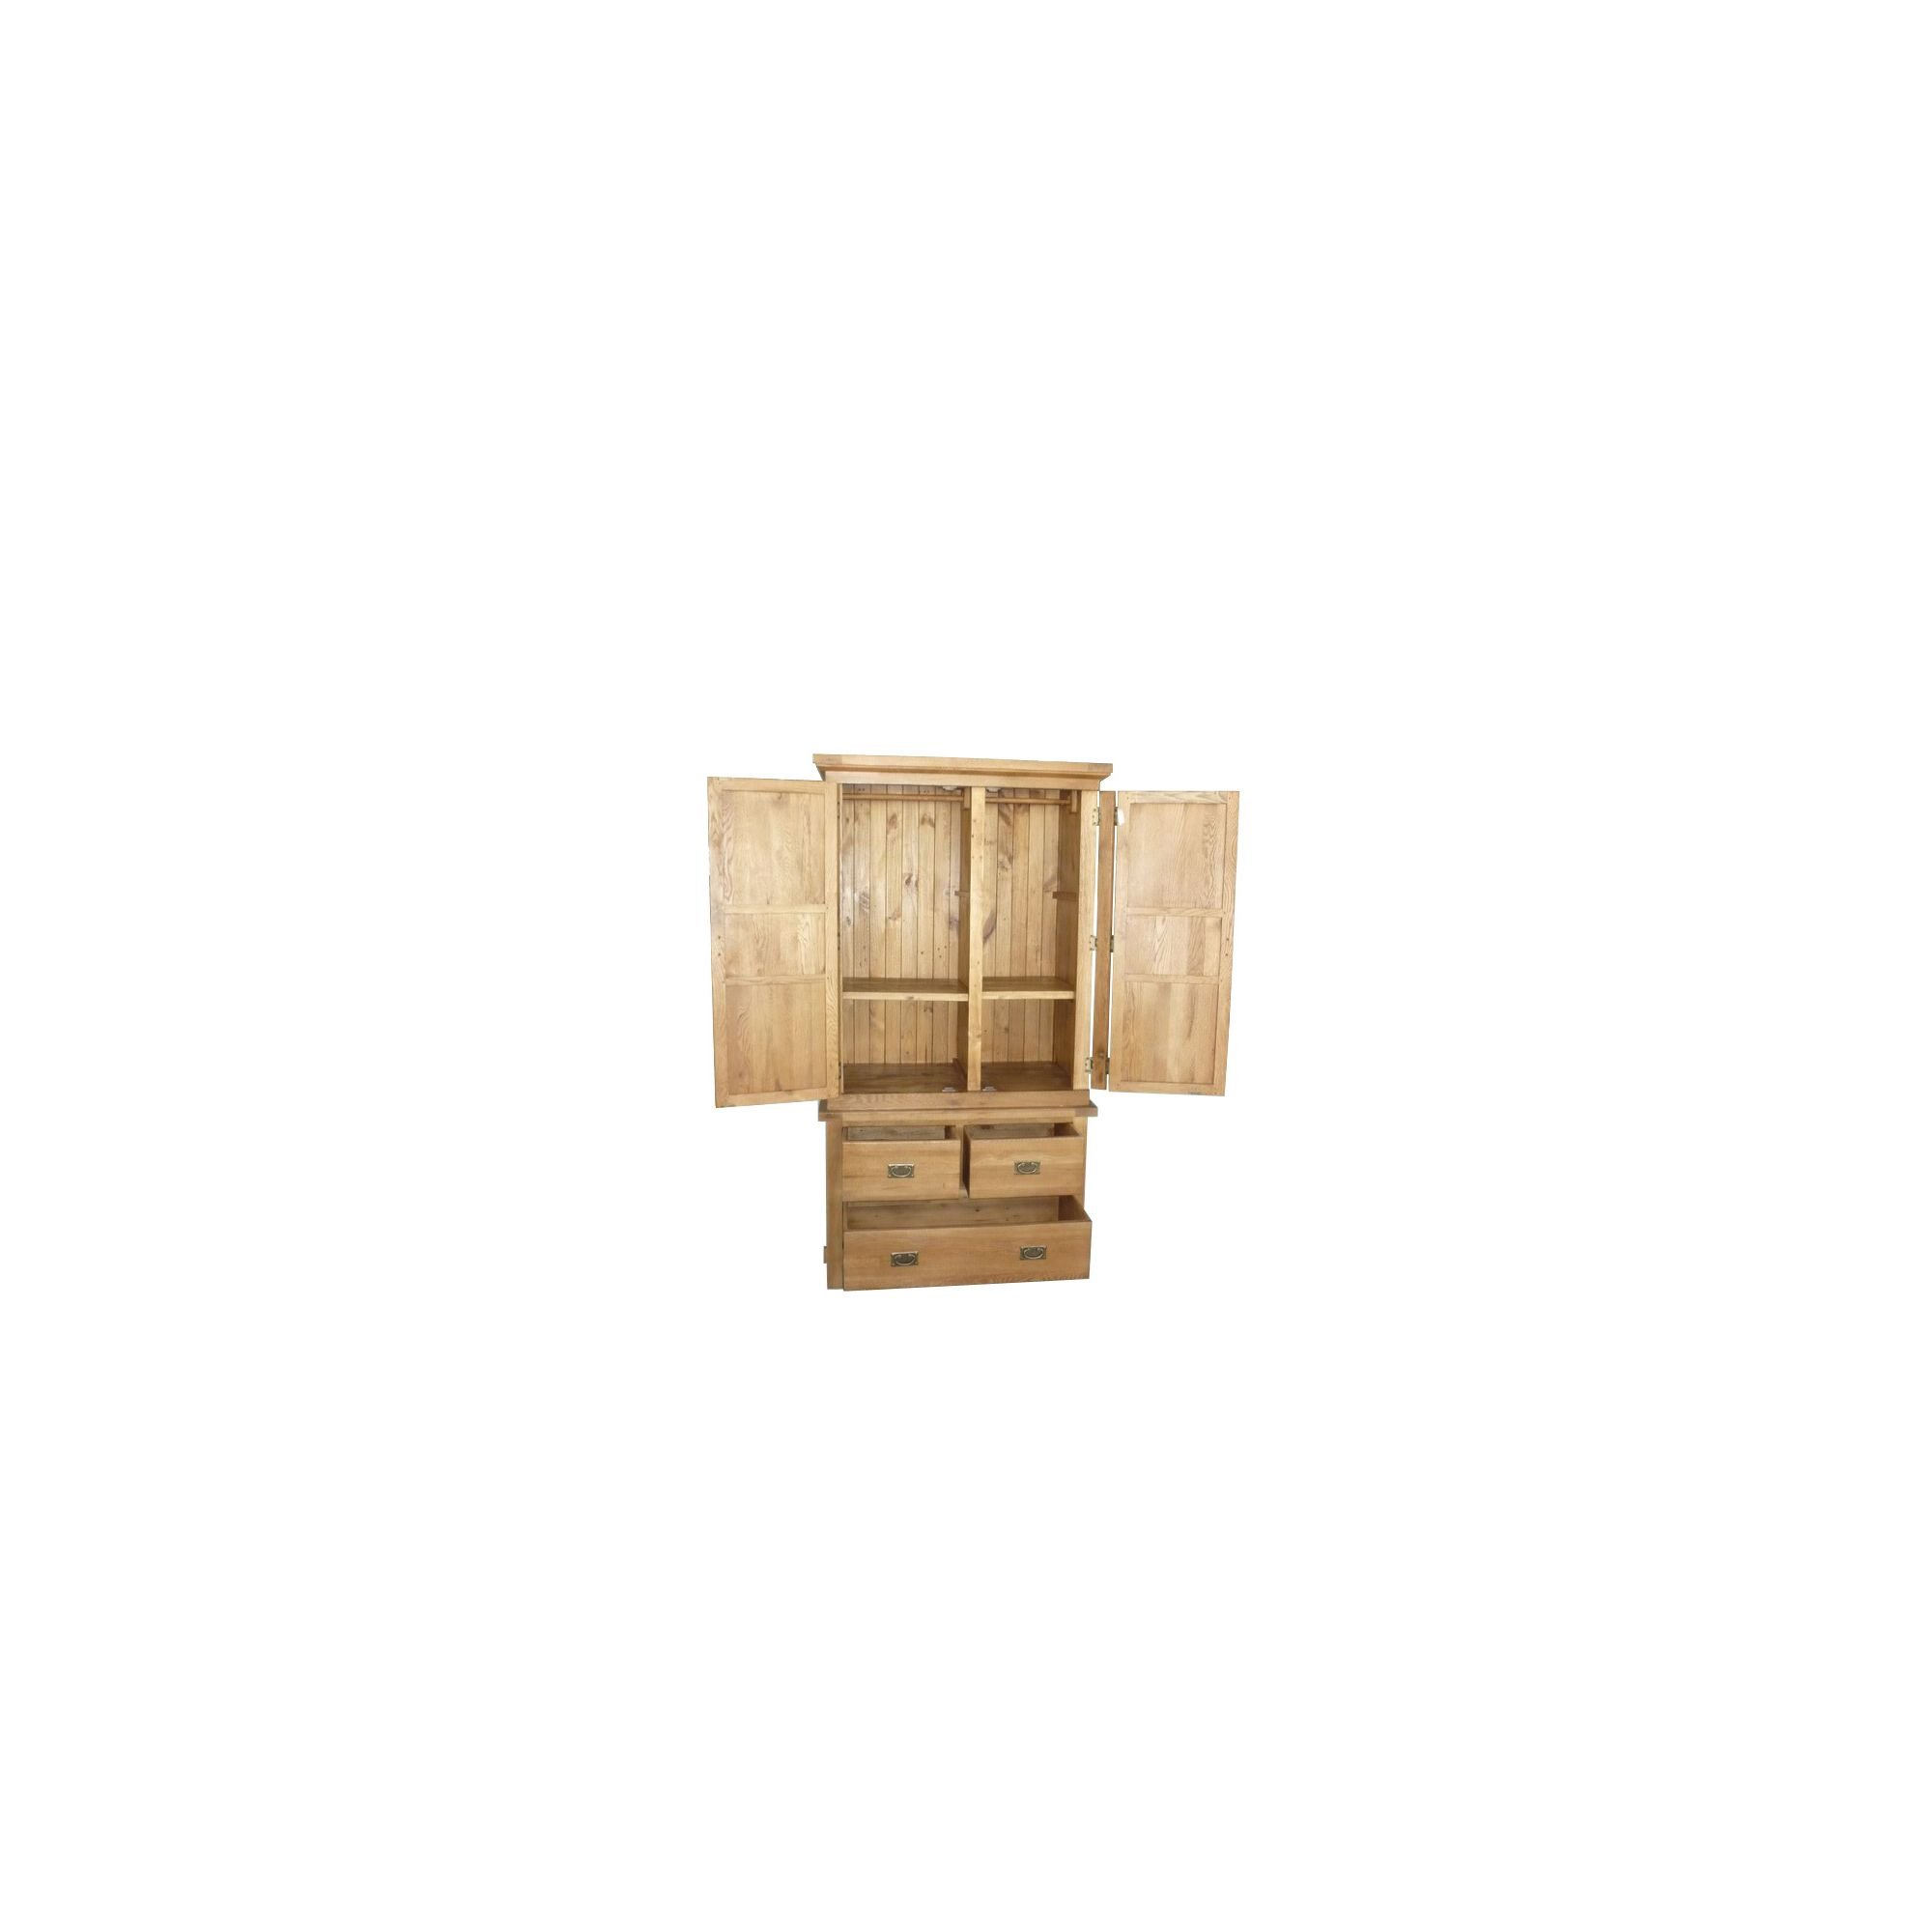 Wiseaction Riviera Two Part Wardrobe with Two Position Shelves at Tesco Direct